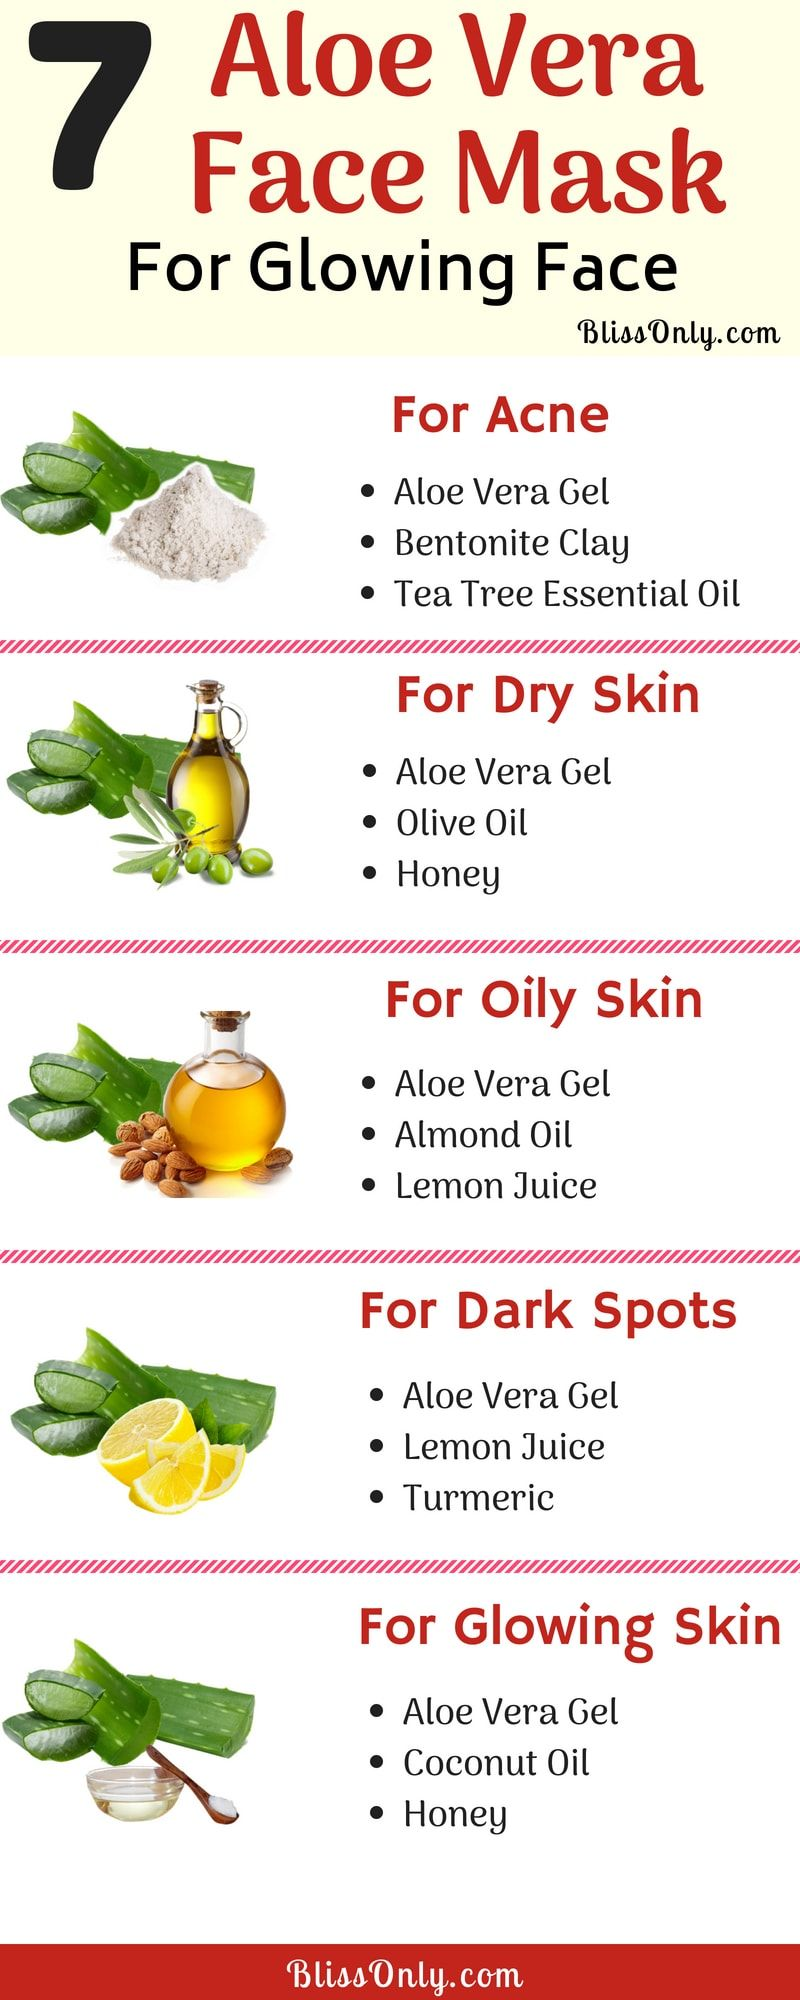 7 Aloe Vera Face Mask For Glowing Face Aloe vera for